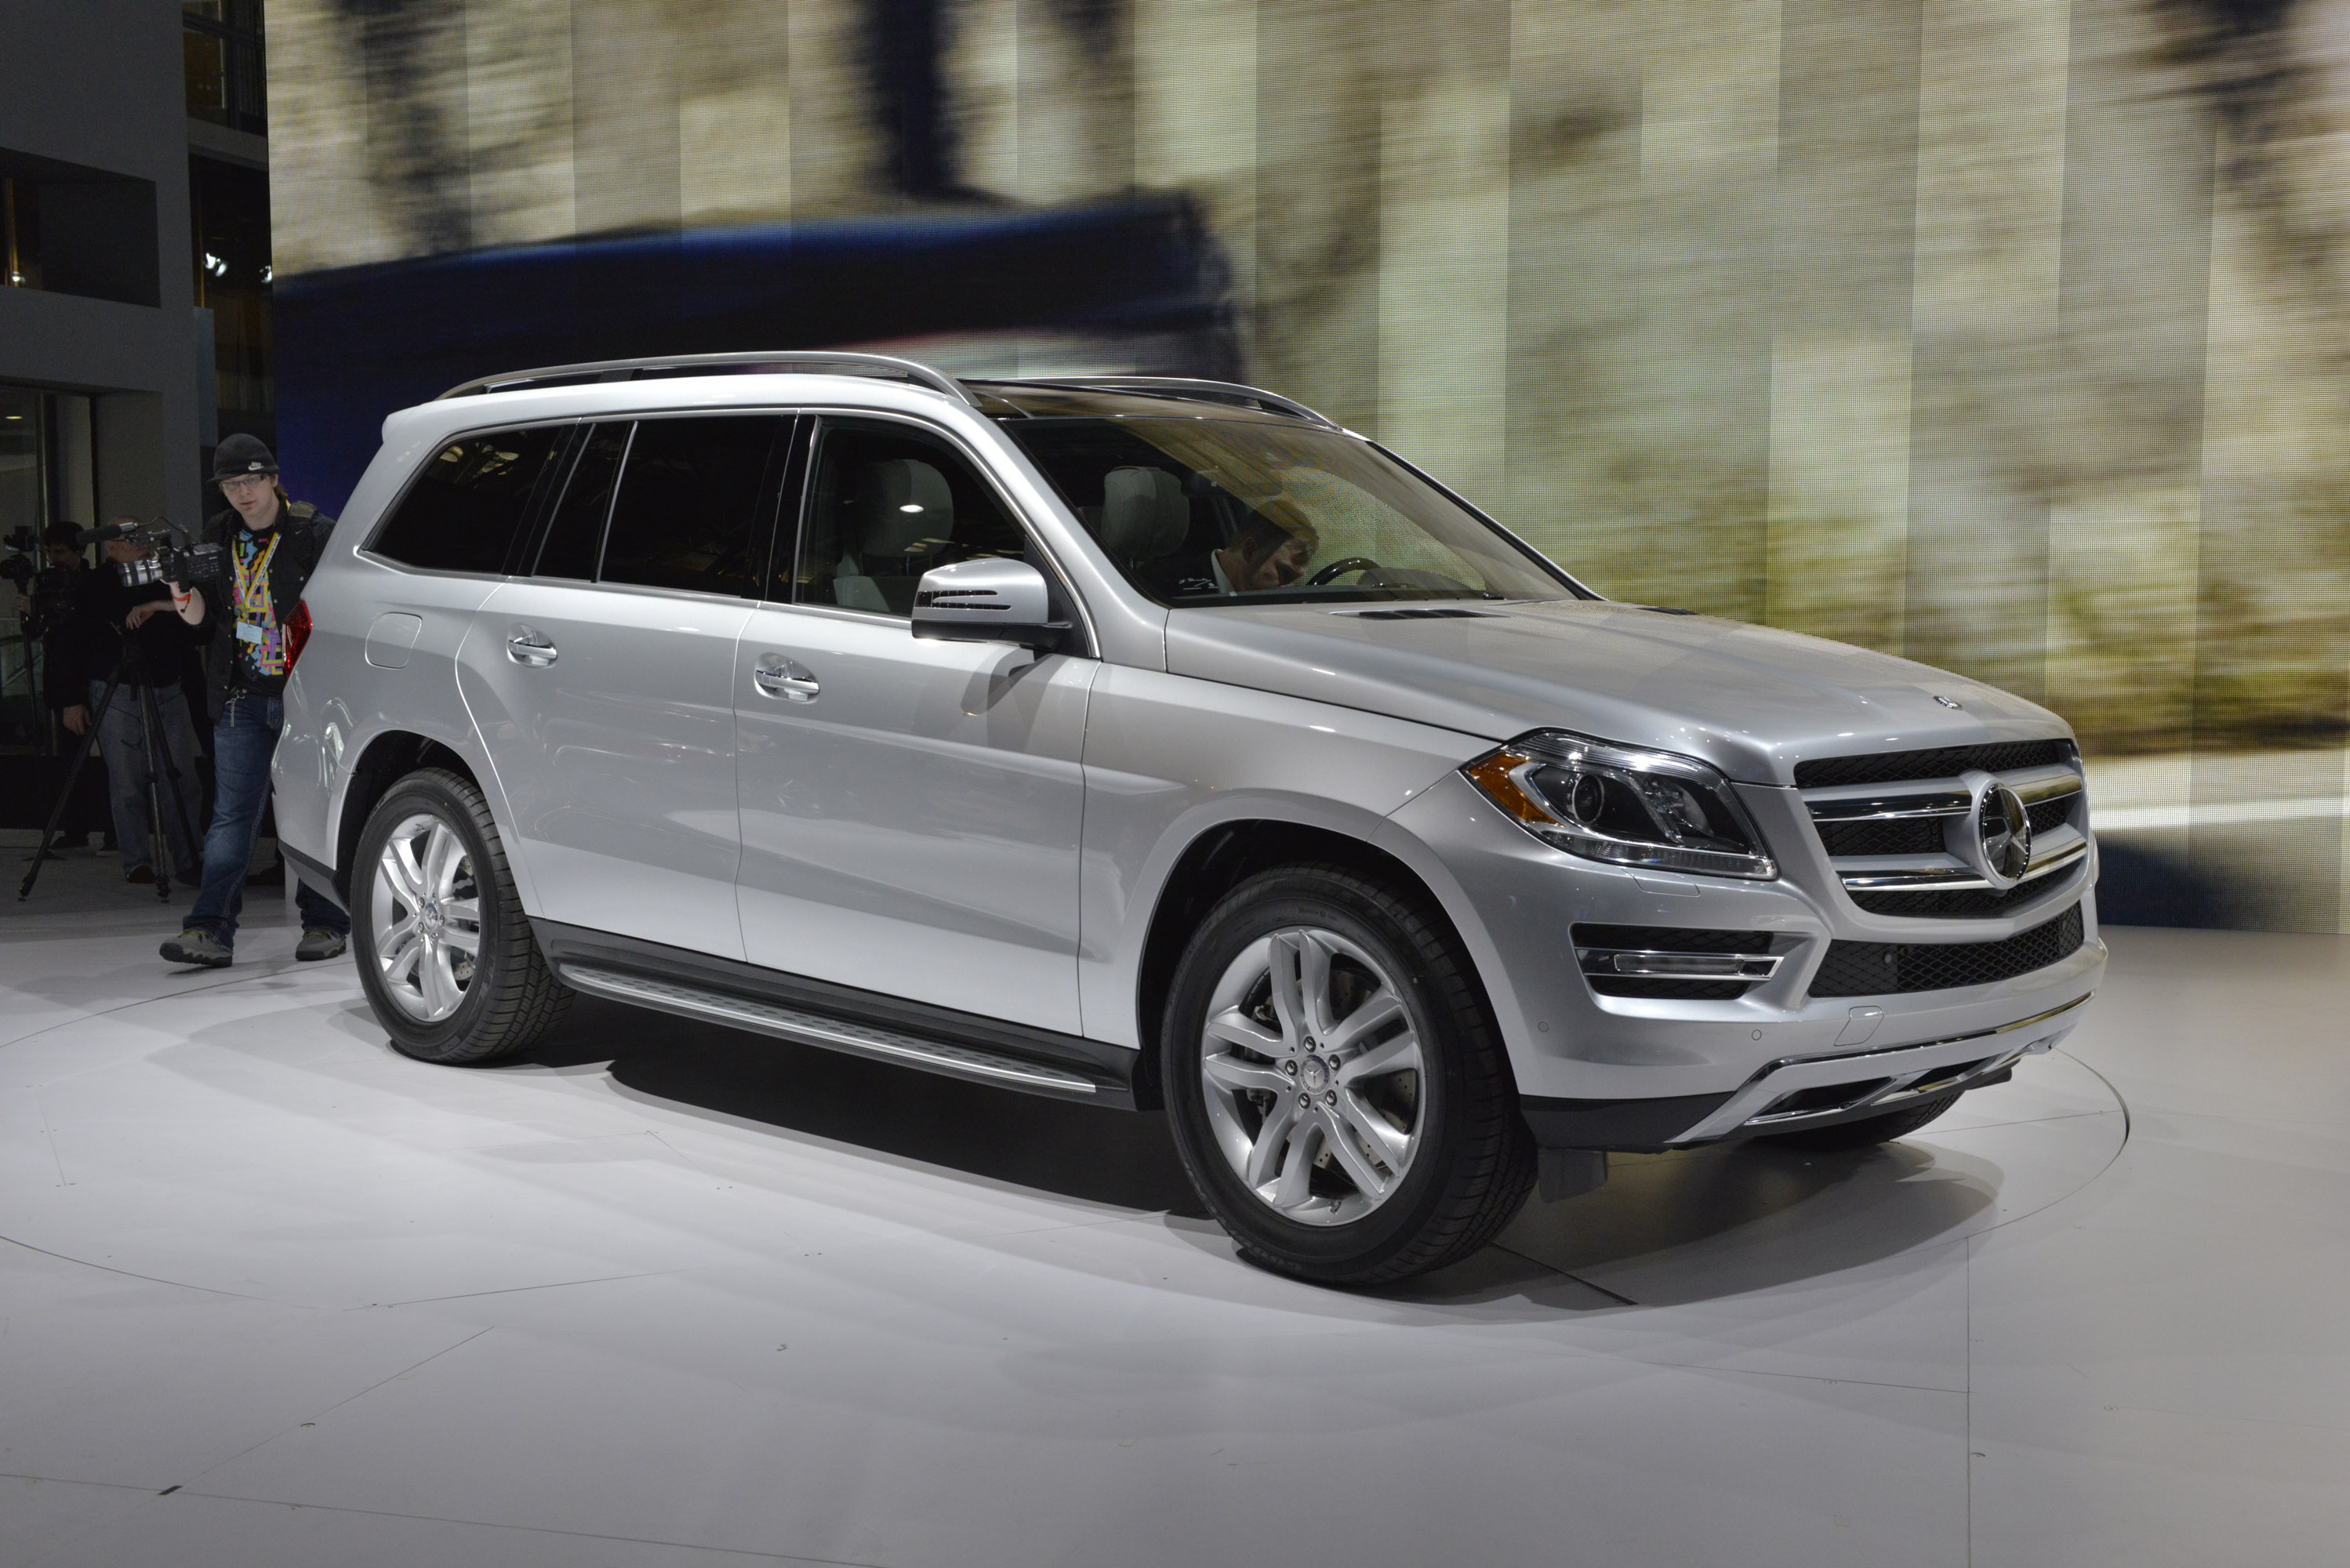 Mercedes benz gl class new york 2012 picture 67763 for Mercedes benz gl series